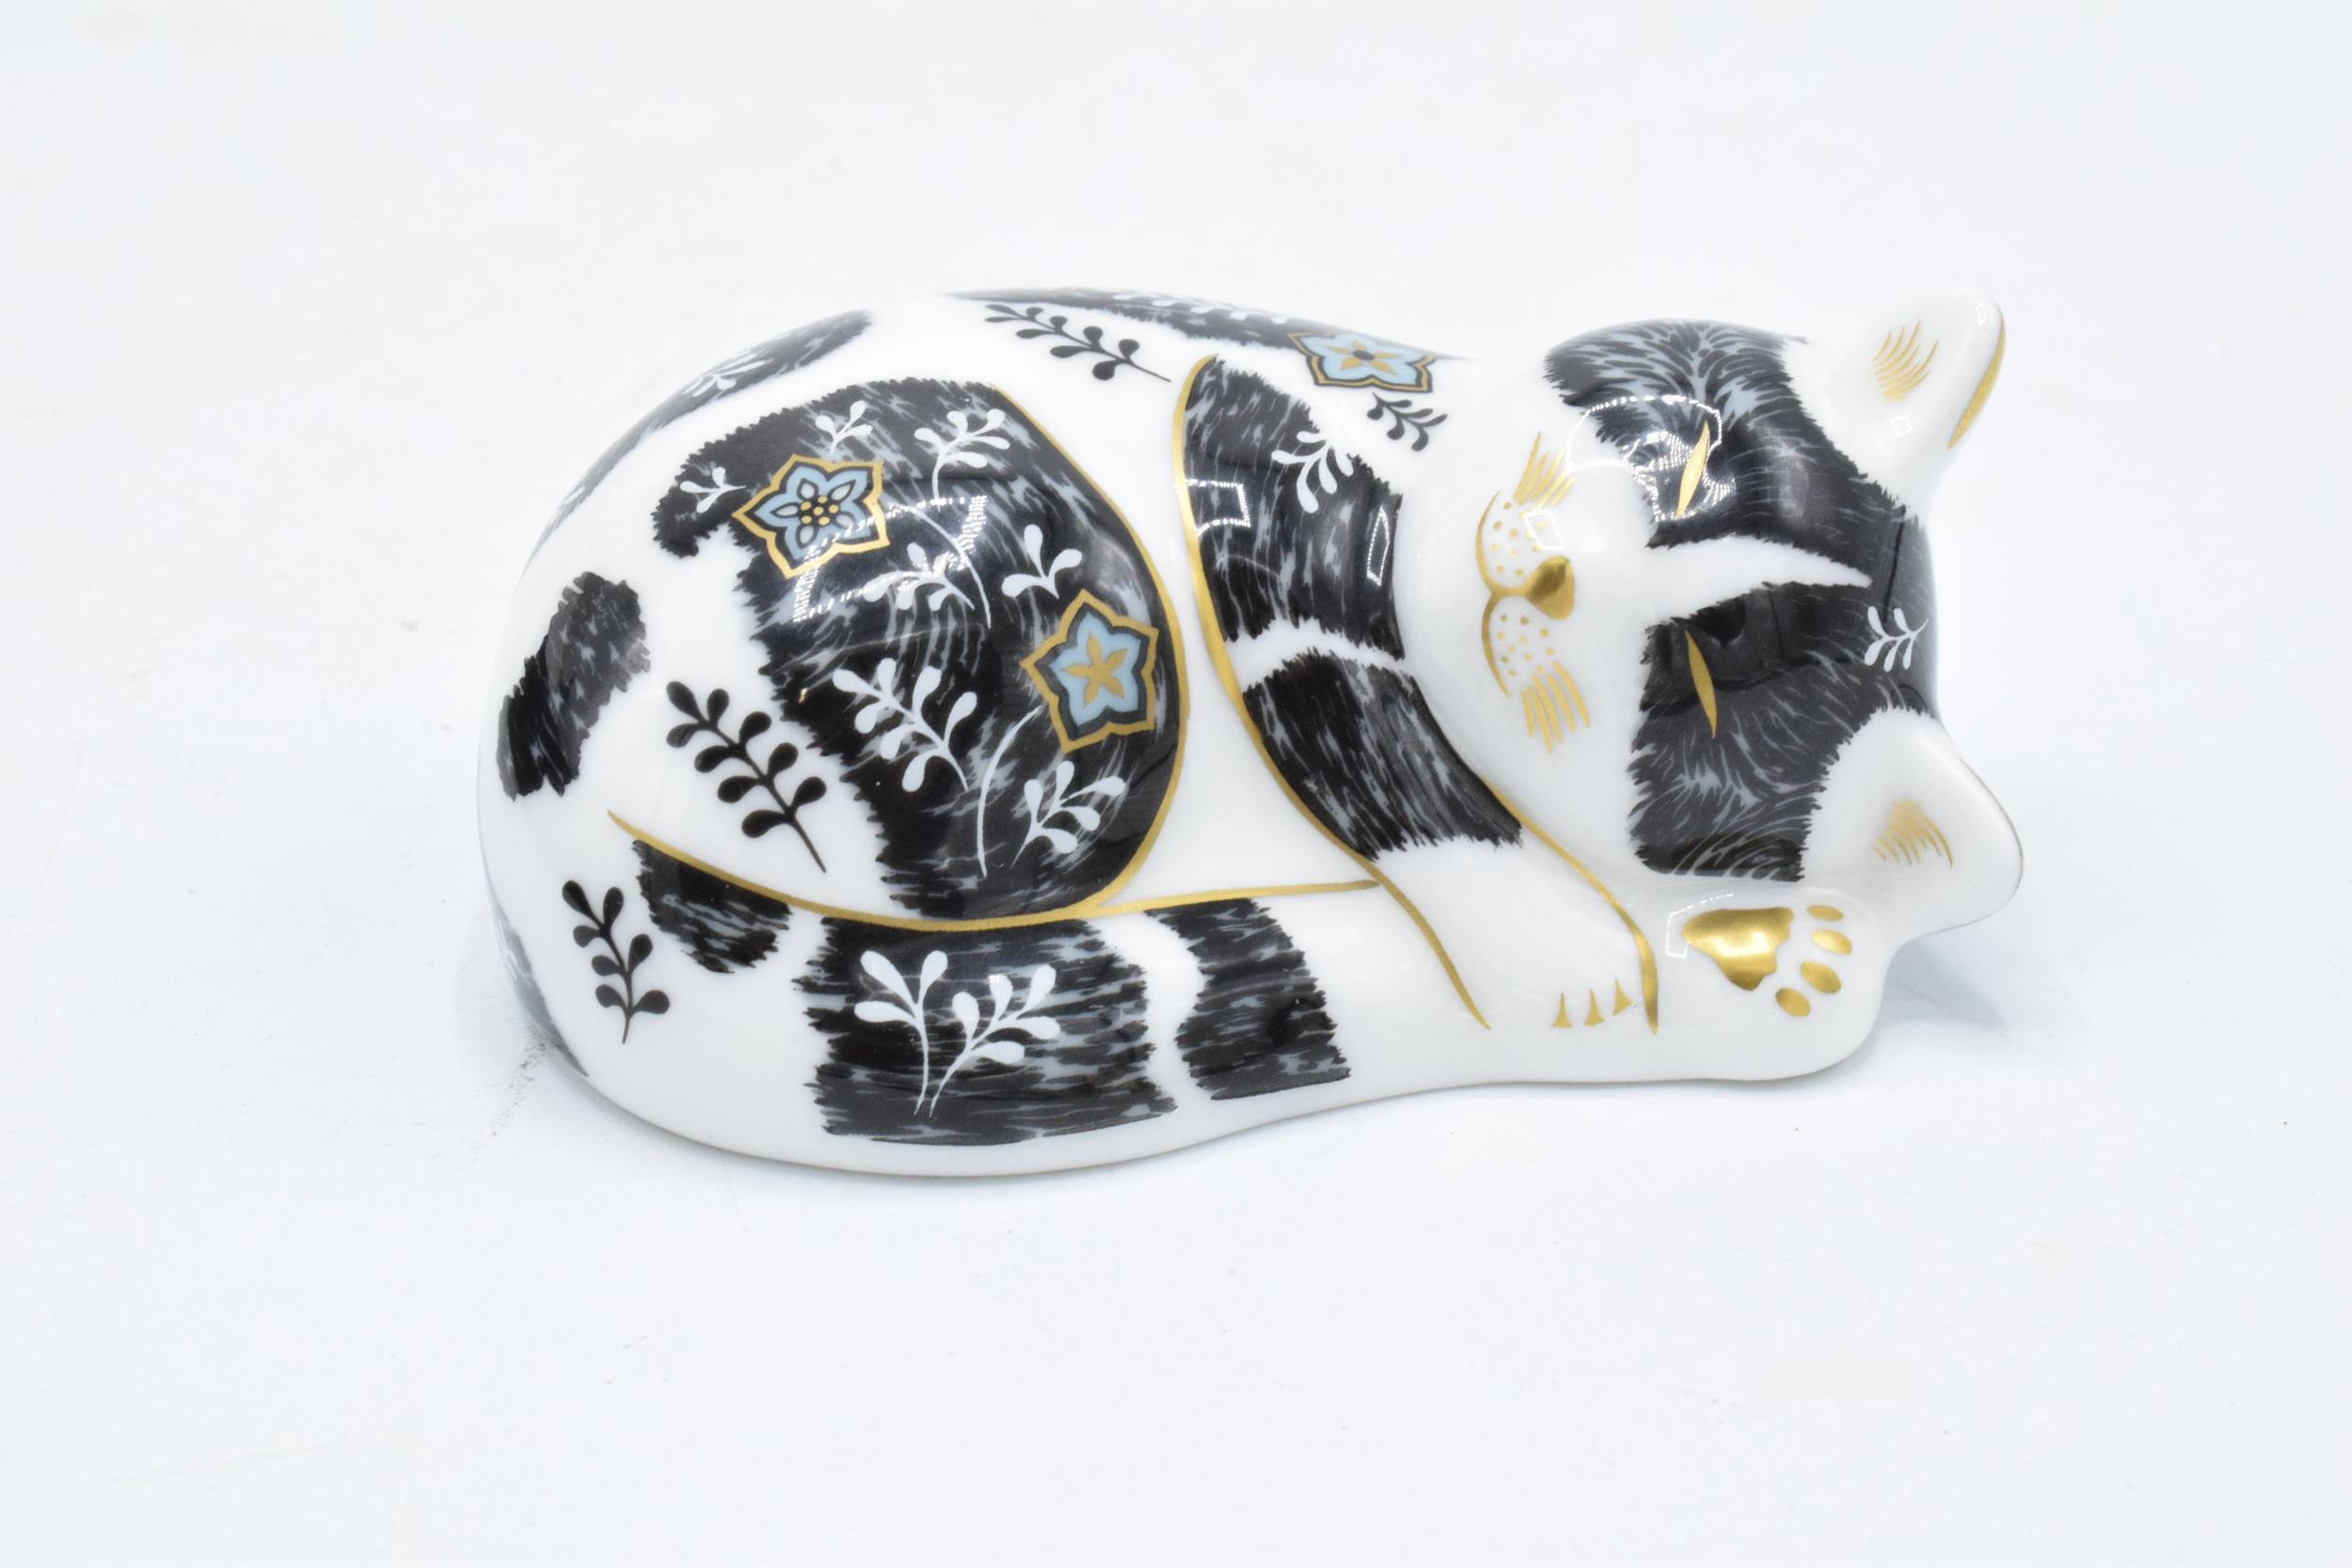 Boxed Royal Crown Derby paperweight in the form of Misty the Kitten. Exclusive for the RCD